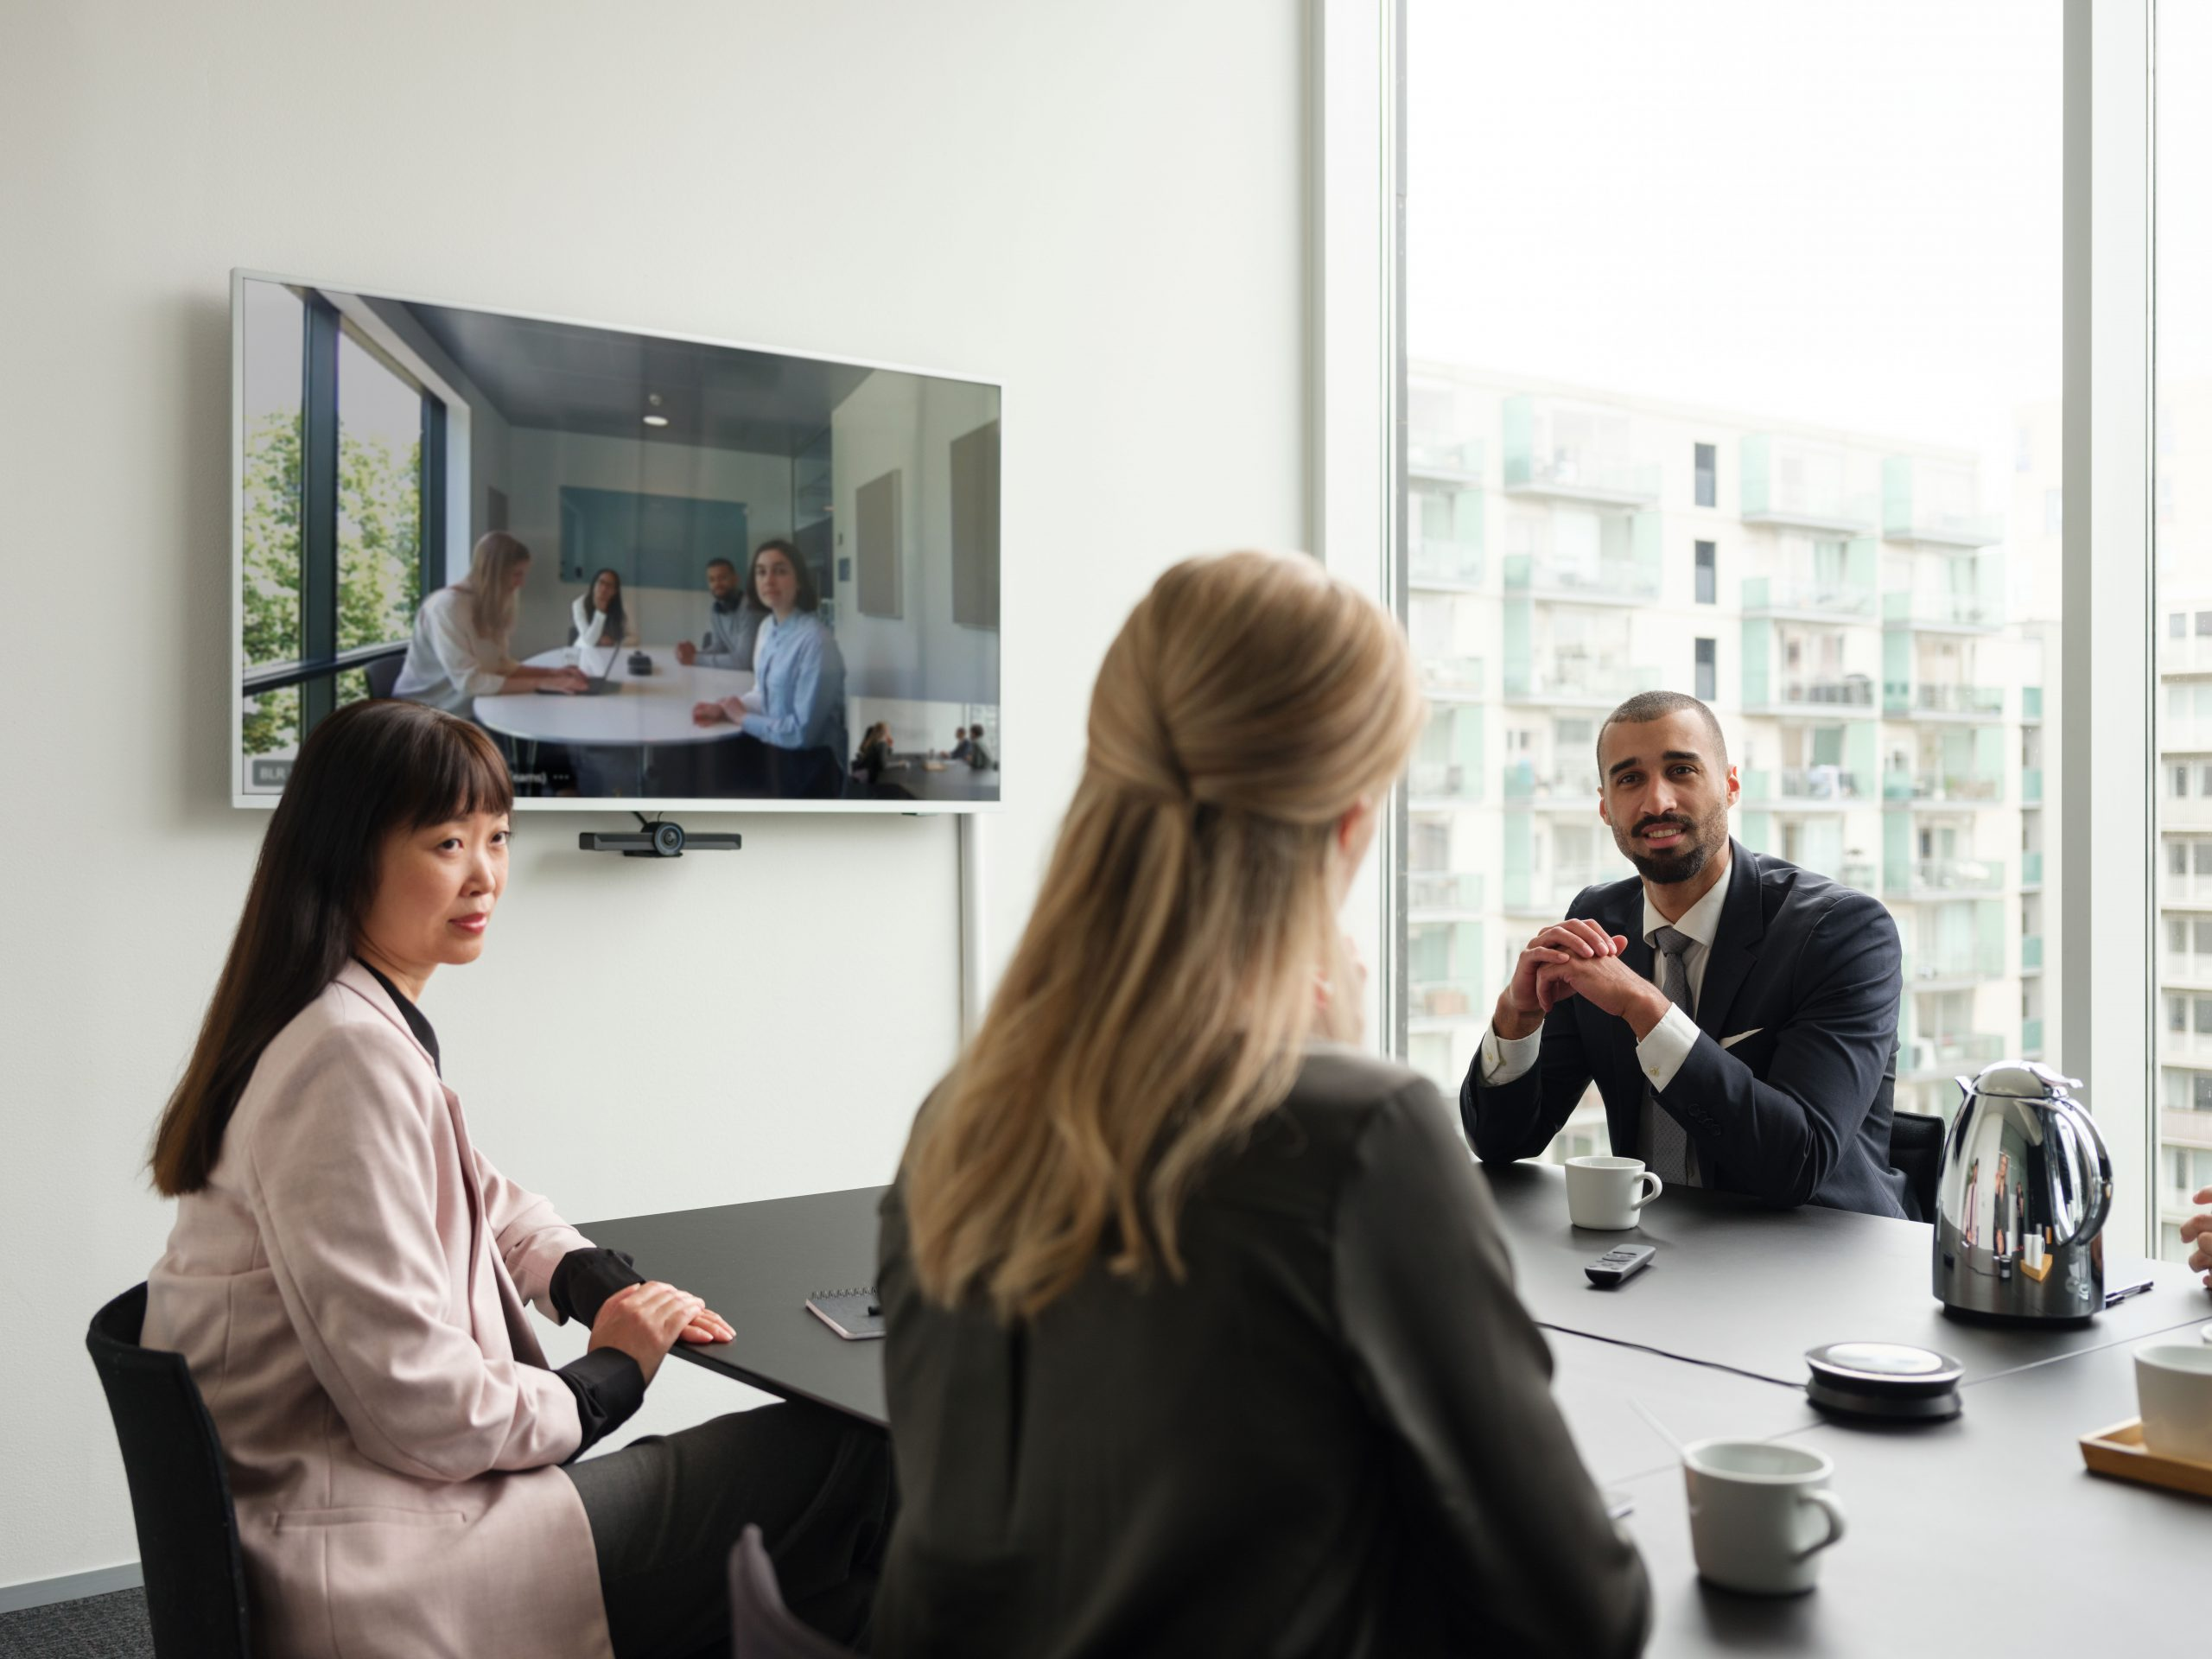 Two women and one man in a business meeting